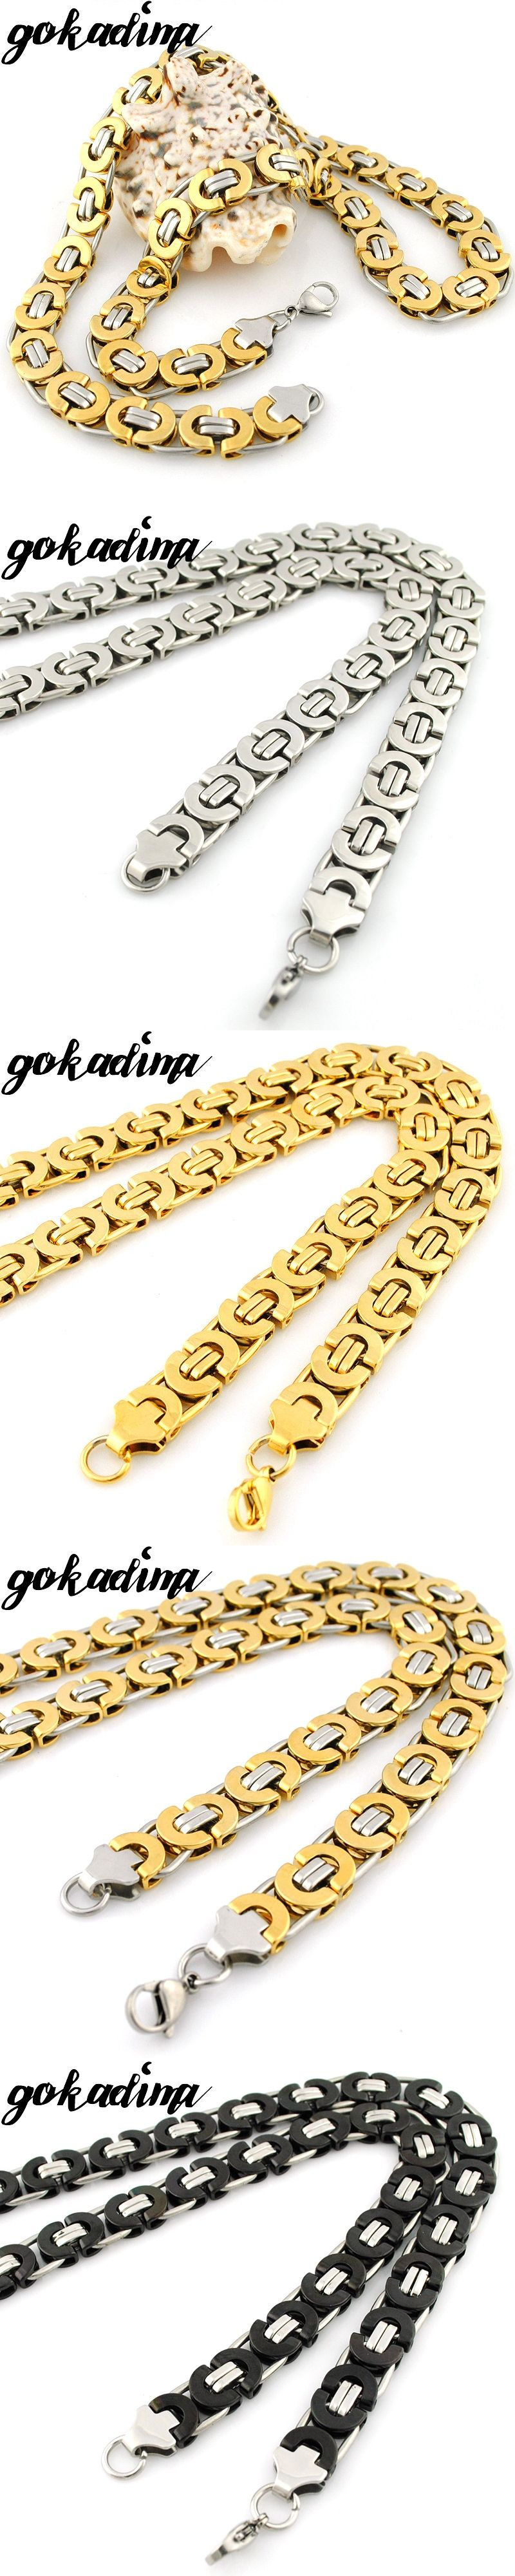 alibaba gold fashion suppliers wholesale showroom fatima chain chains